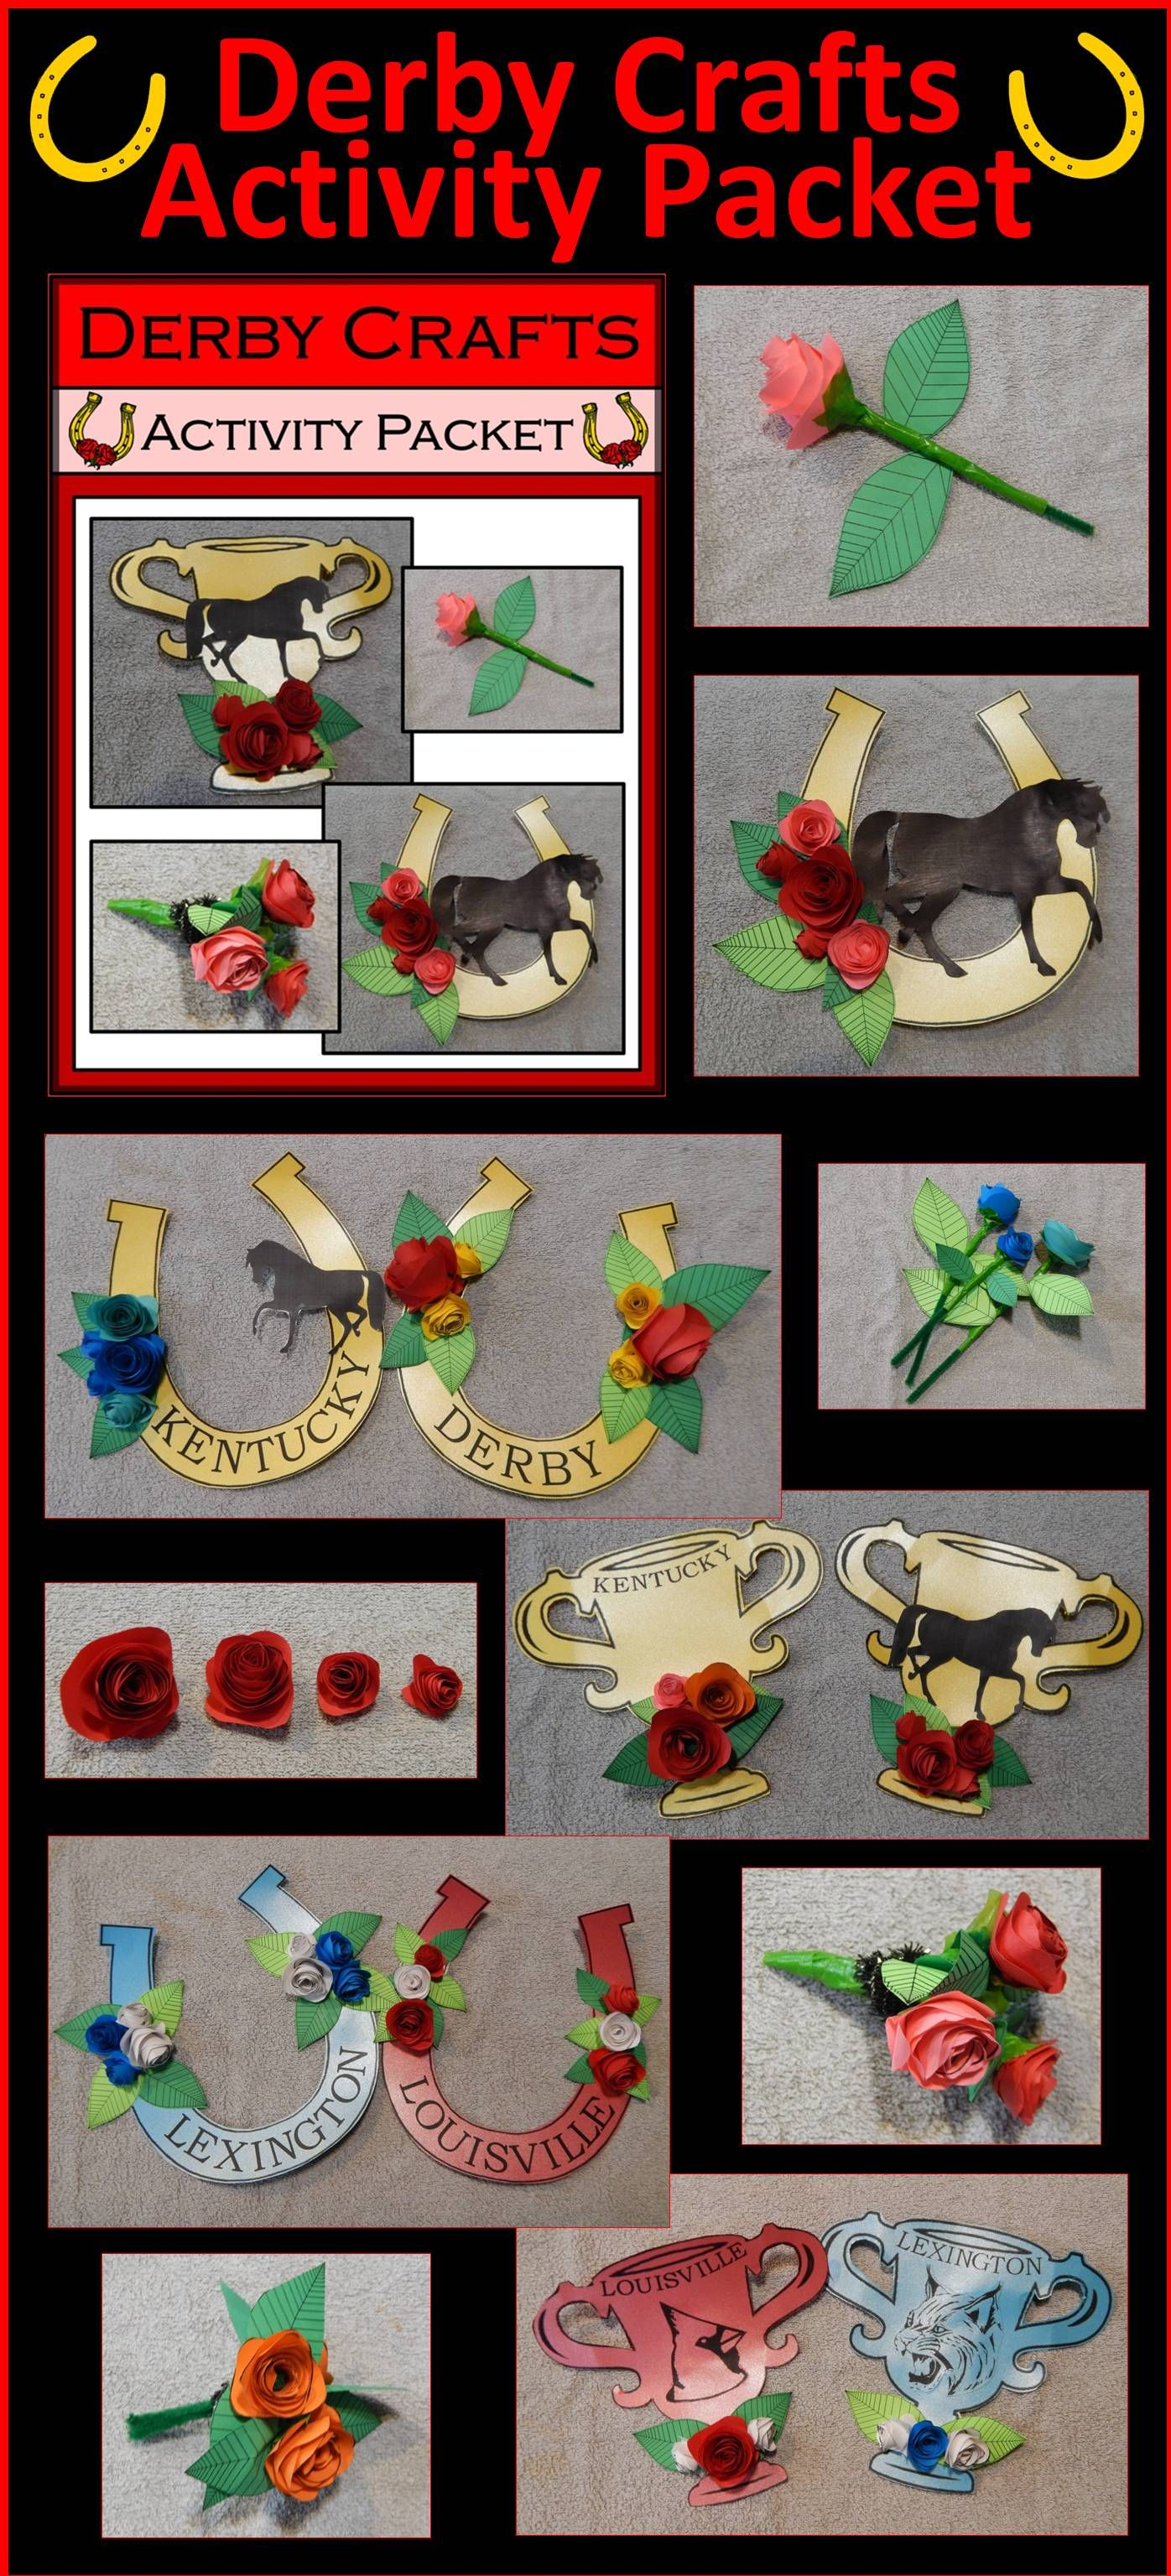 Kentucky Derby Crafts Activity Packet